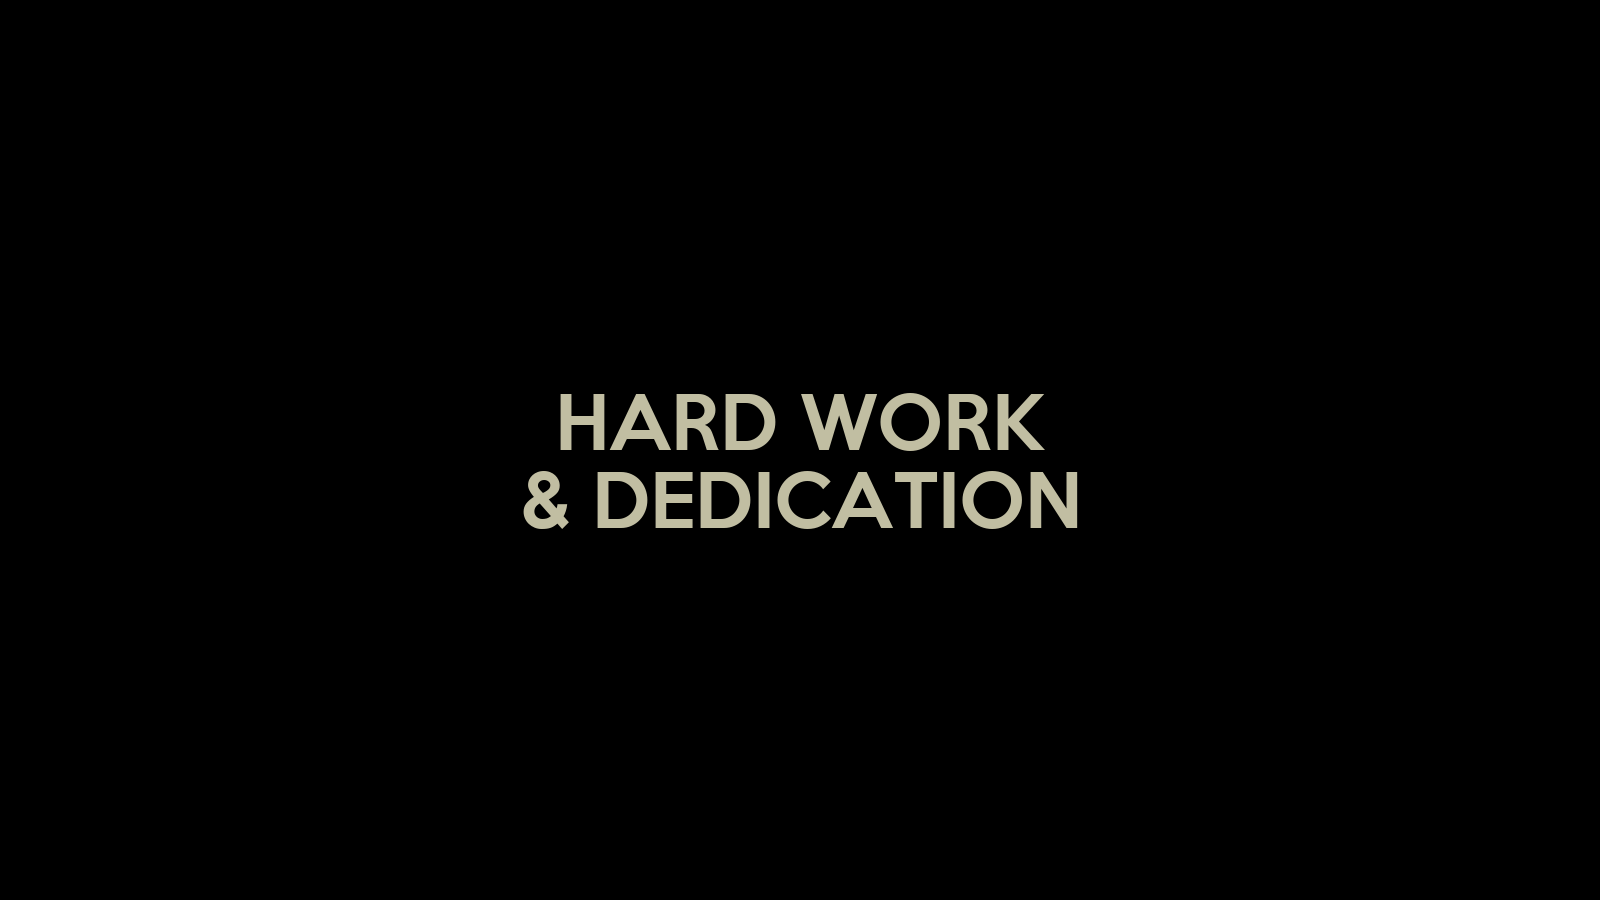 Hard work dedication wallpaper thecheapjerseys Choice Image